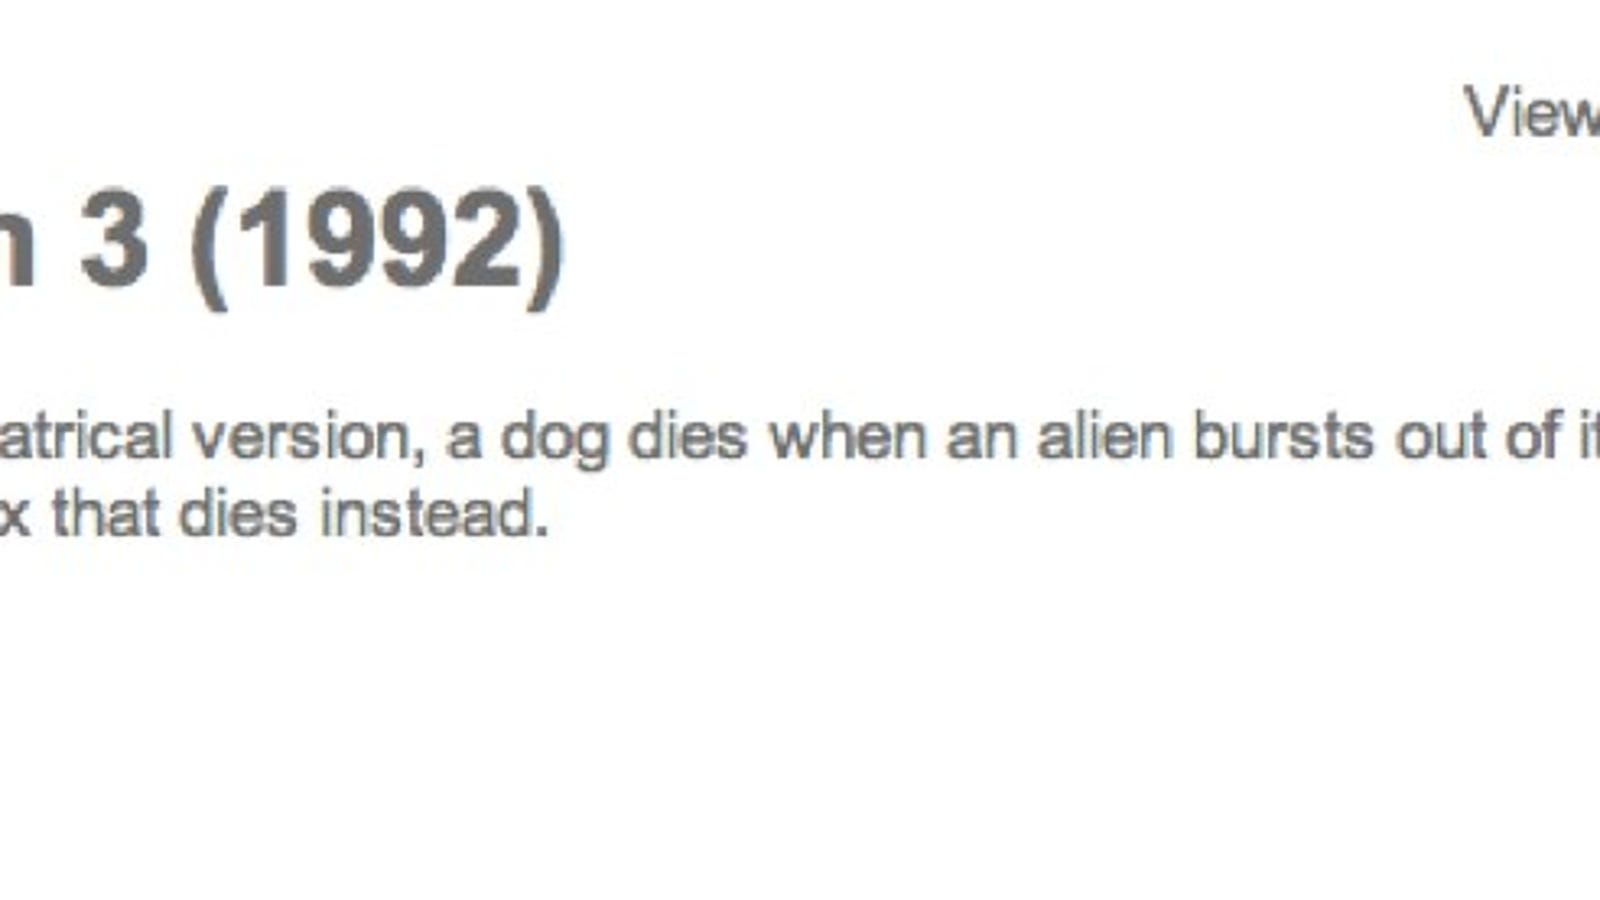 Does The Dog Die? A Movie website that asks the IMPORTANT